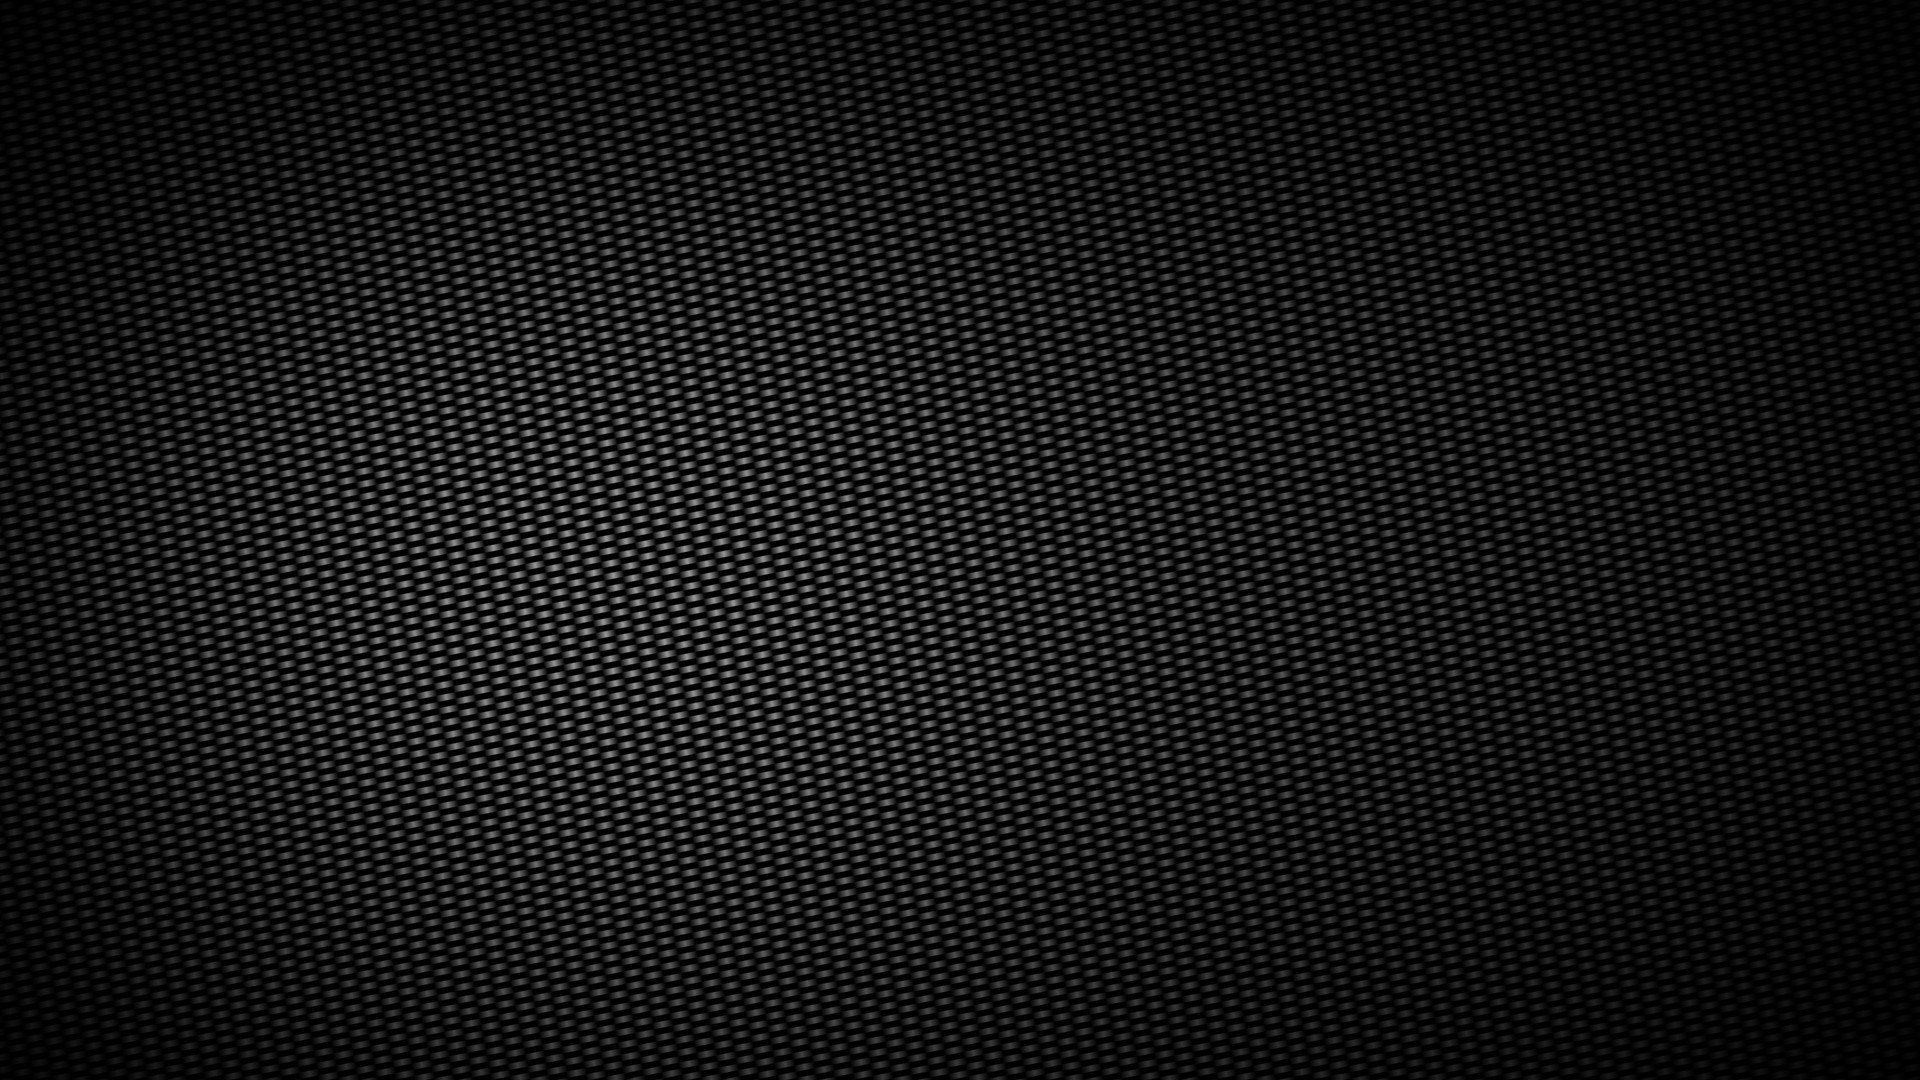 Download free carbon wallpapers for your mobile phone – most .